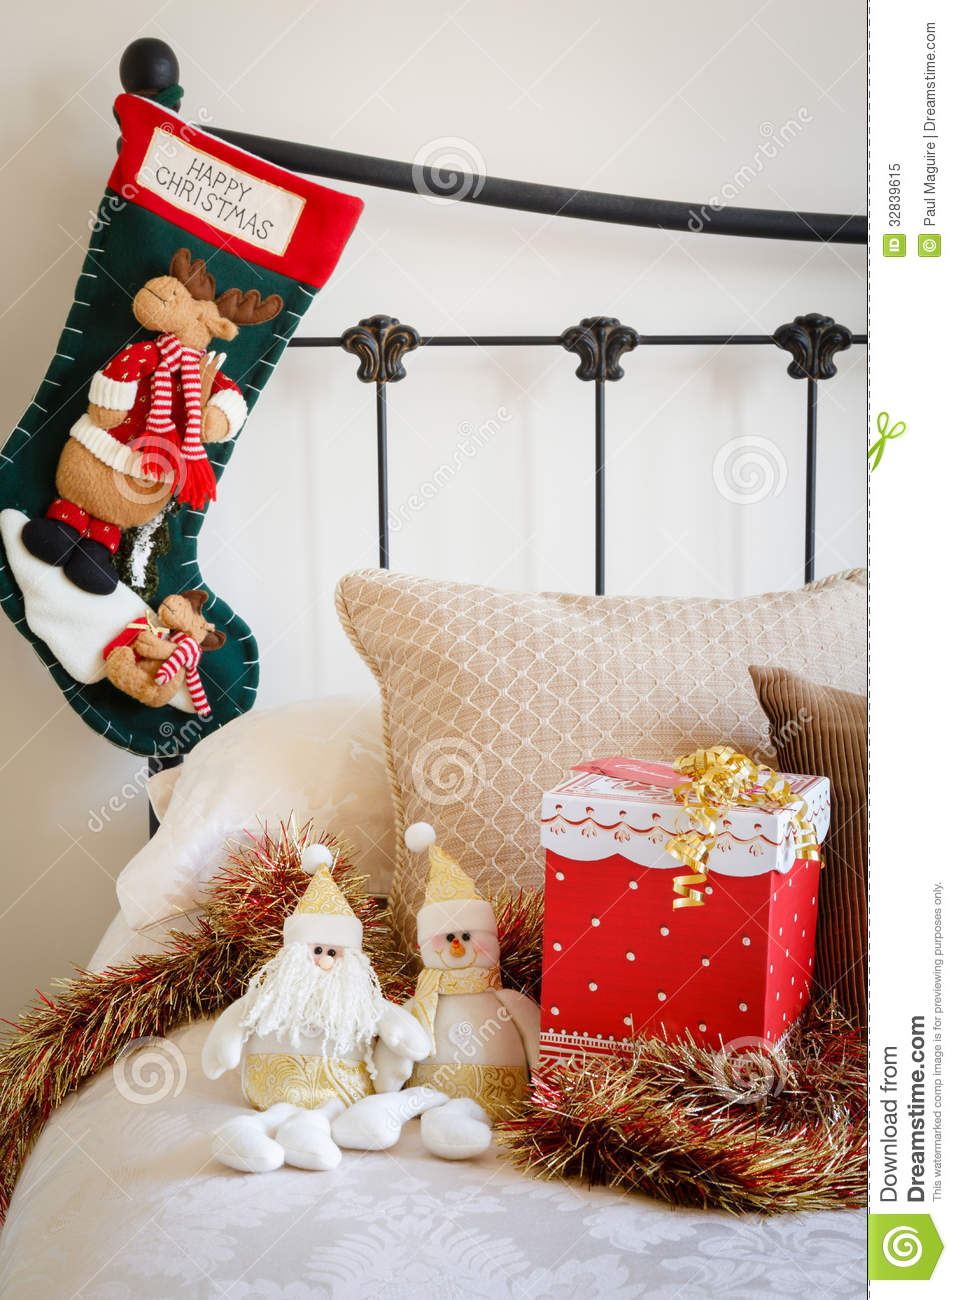 Christmas Stocking On Bed Royalty Free Stock Photo Image